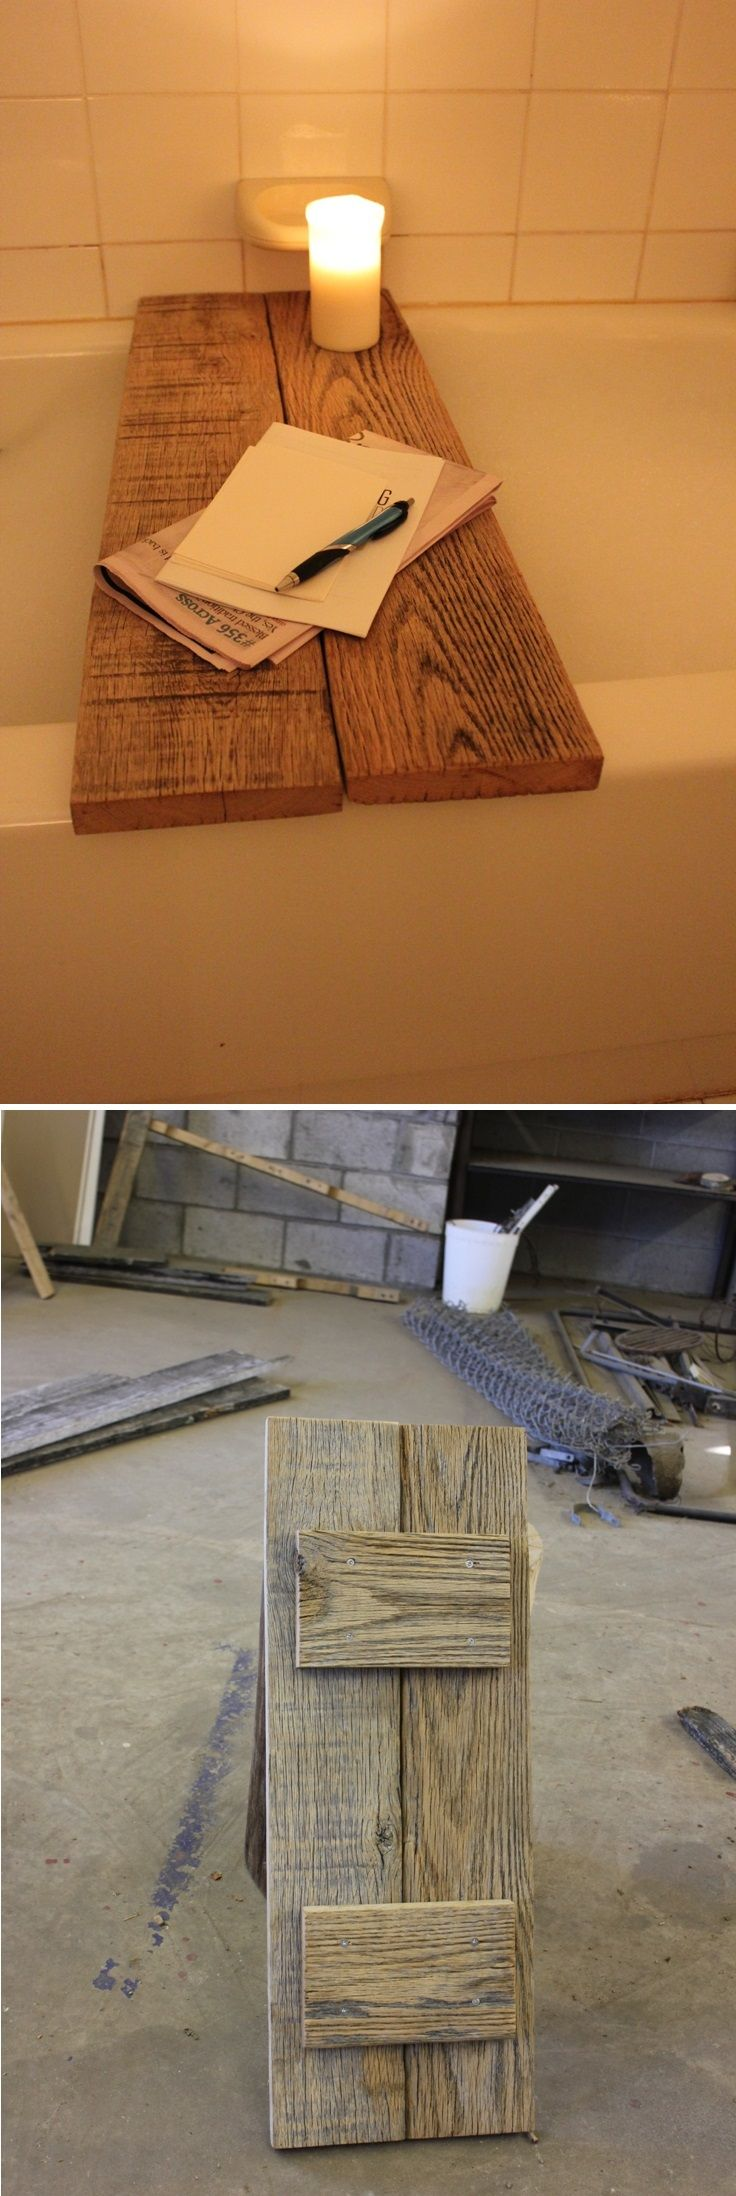 Bubble Time: DIY Reclaimed Oak Bathtub Caddy - Let Alan know I found projects! @Linda Bruinenberg Bruinenberg Bruinenberg Bruinenberg Bruinenberg Bruinenberg Bruinenberg Barker - it doesn't look too hard!